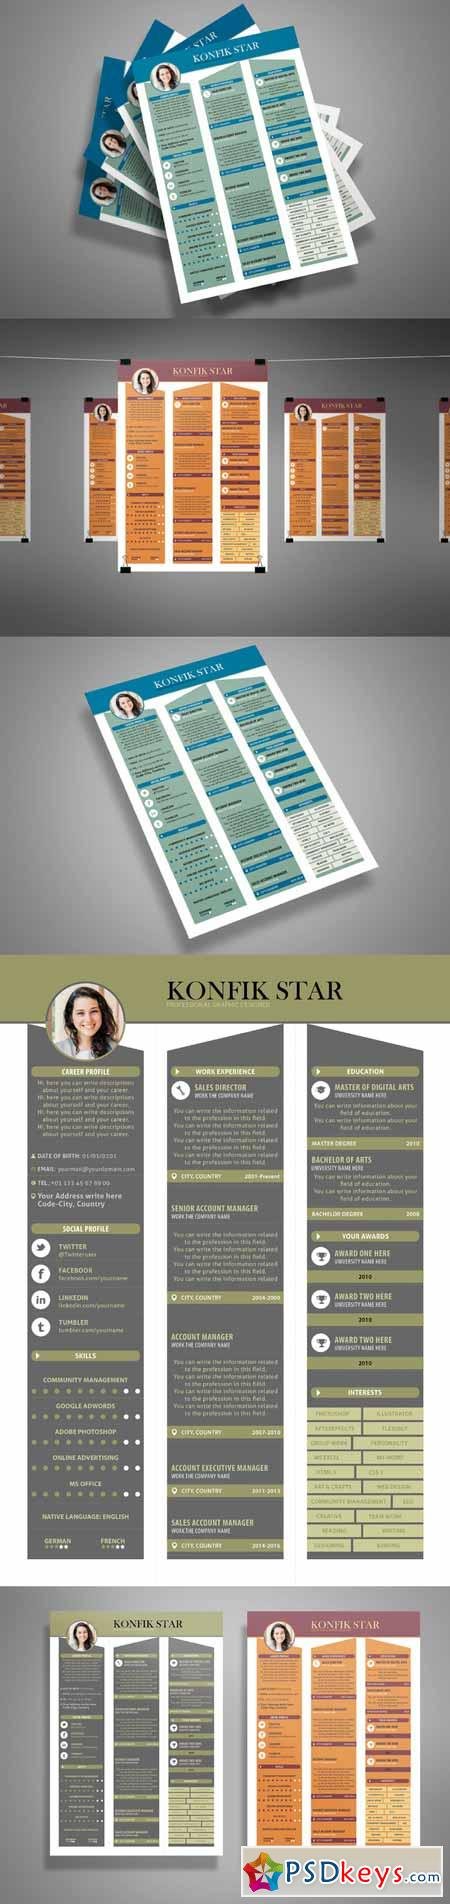 Professional Resume CV 3 colors 509827